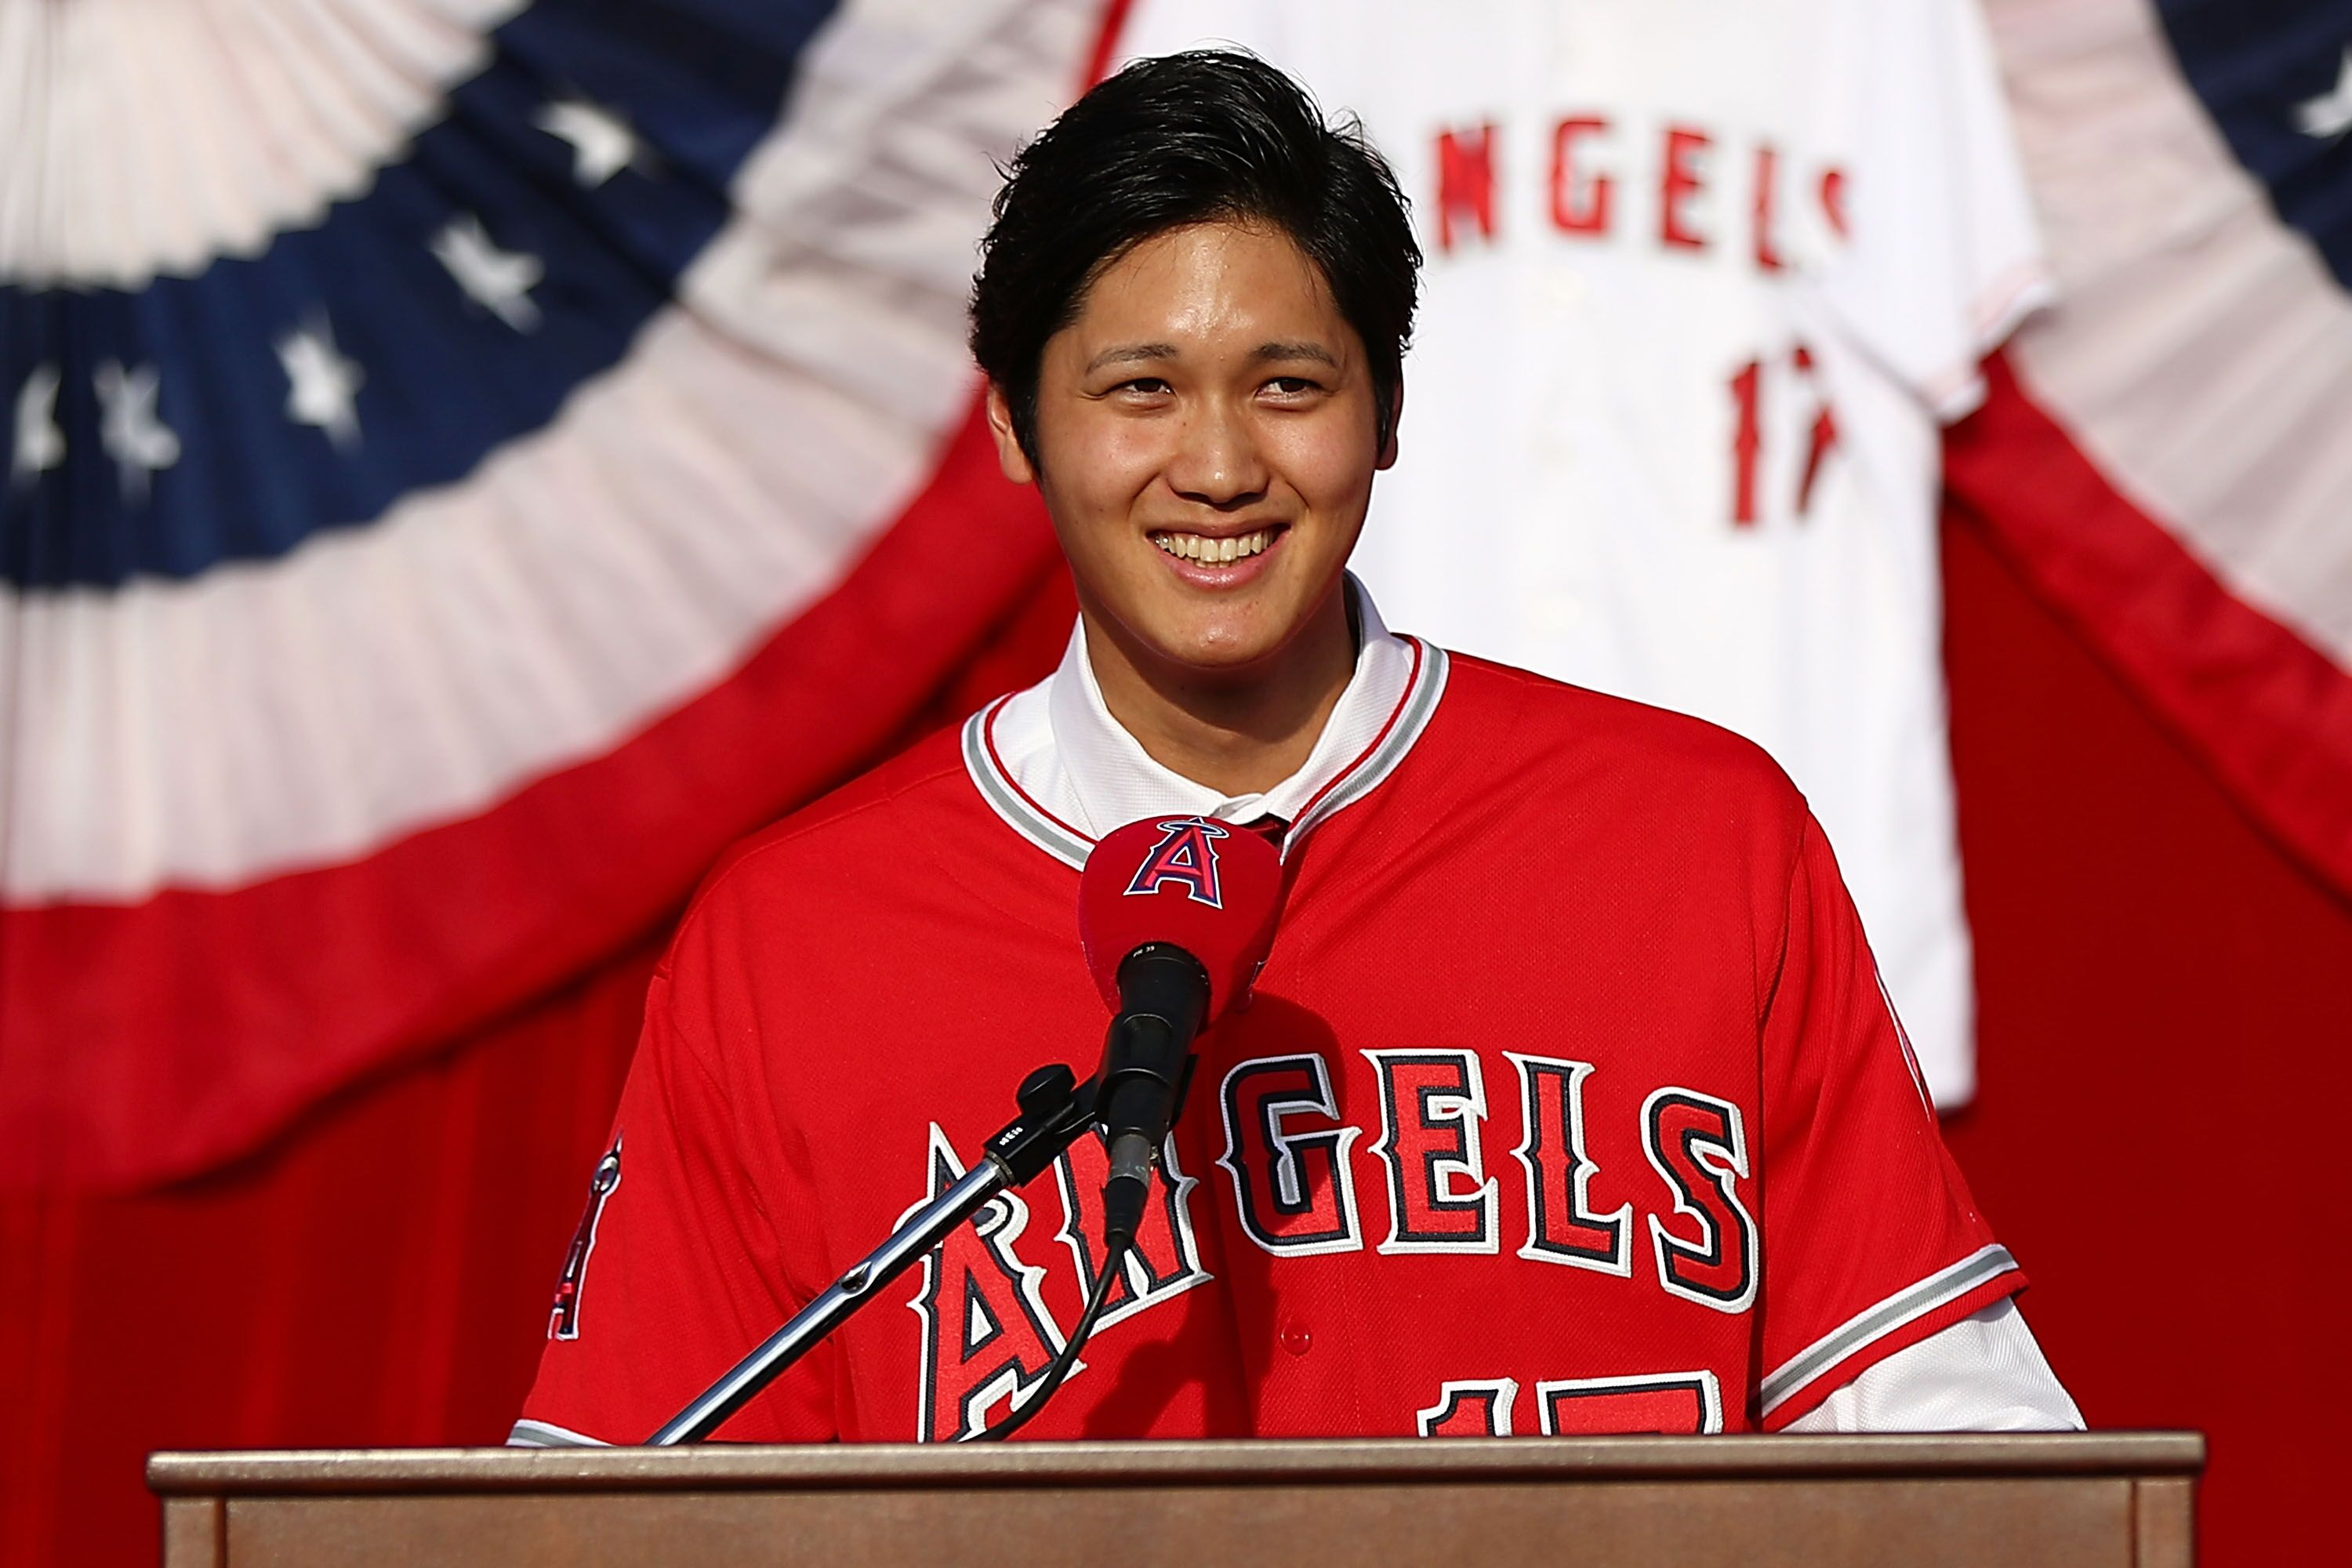 889073650-los-angeles-angels-of-anaheim-introduce-shohei-ohtani.jpg